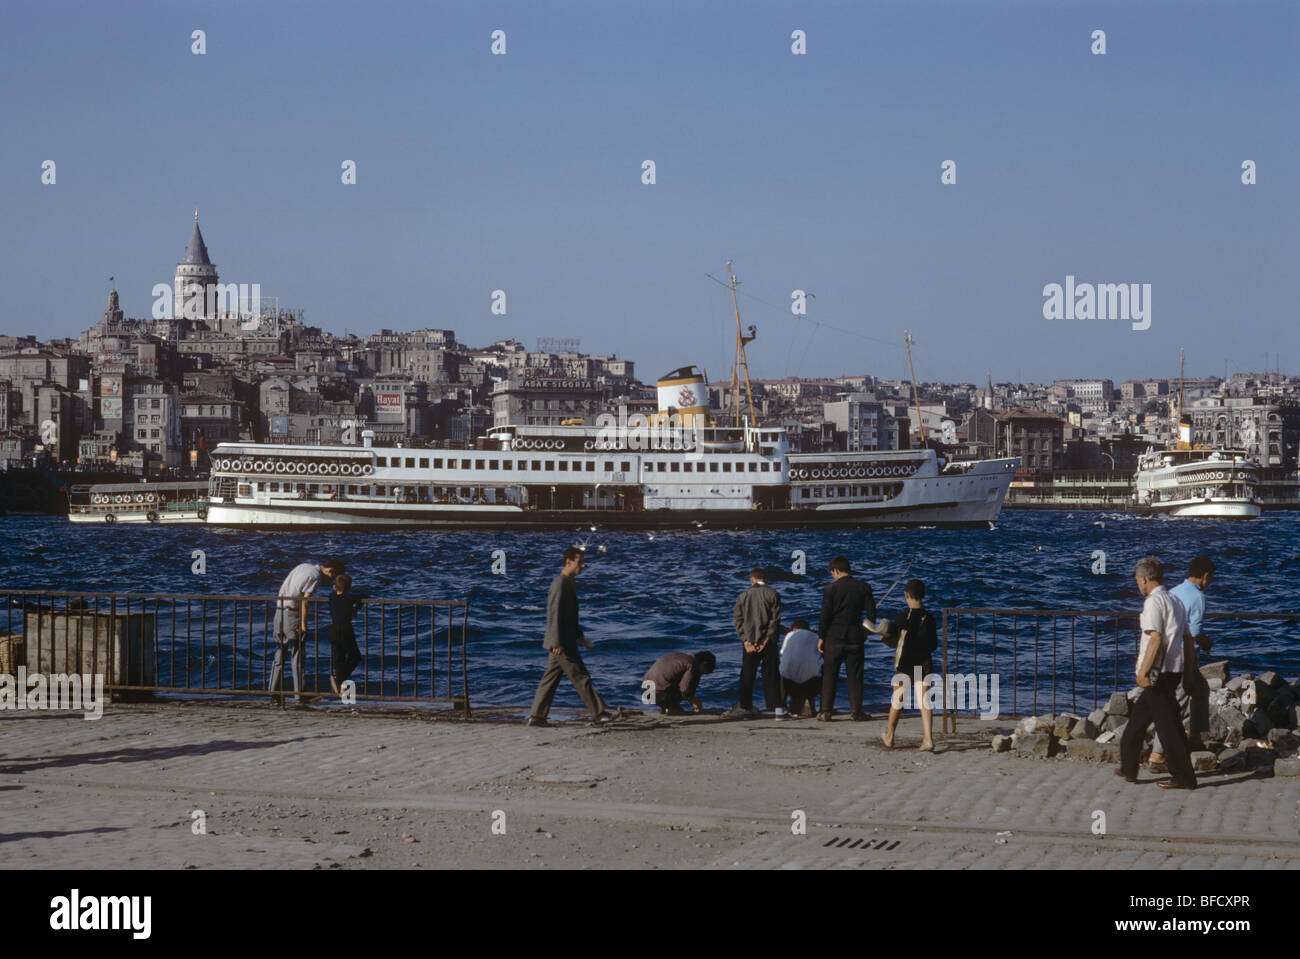 Ferry boats, the Galata Tower across the Golden Horn from the Eminönü waterfront, İstanbul, Turkey  670924 - Stock Image